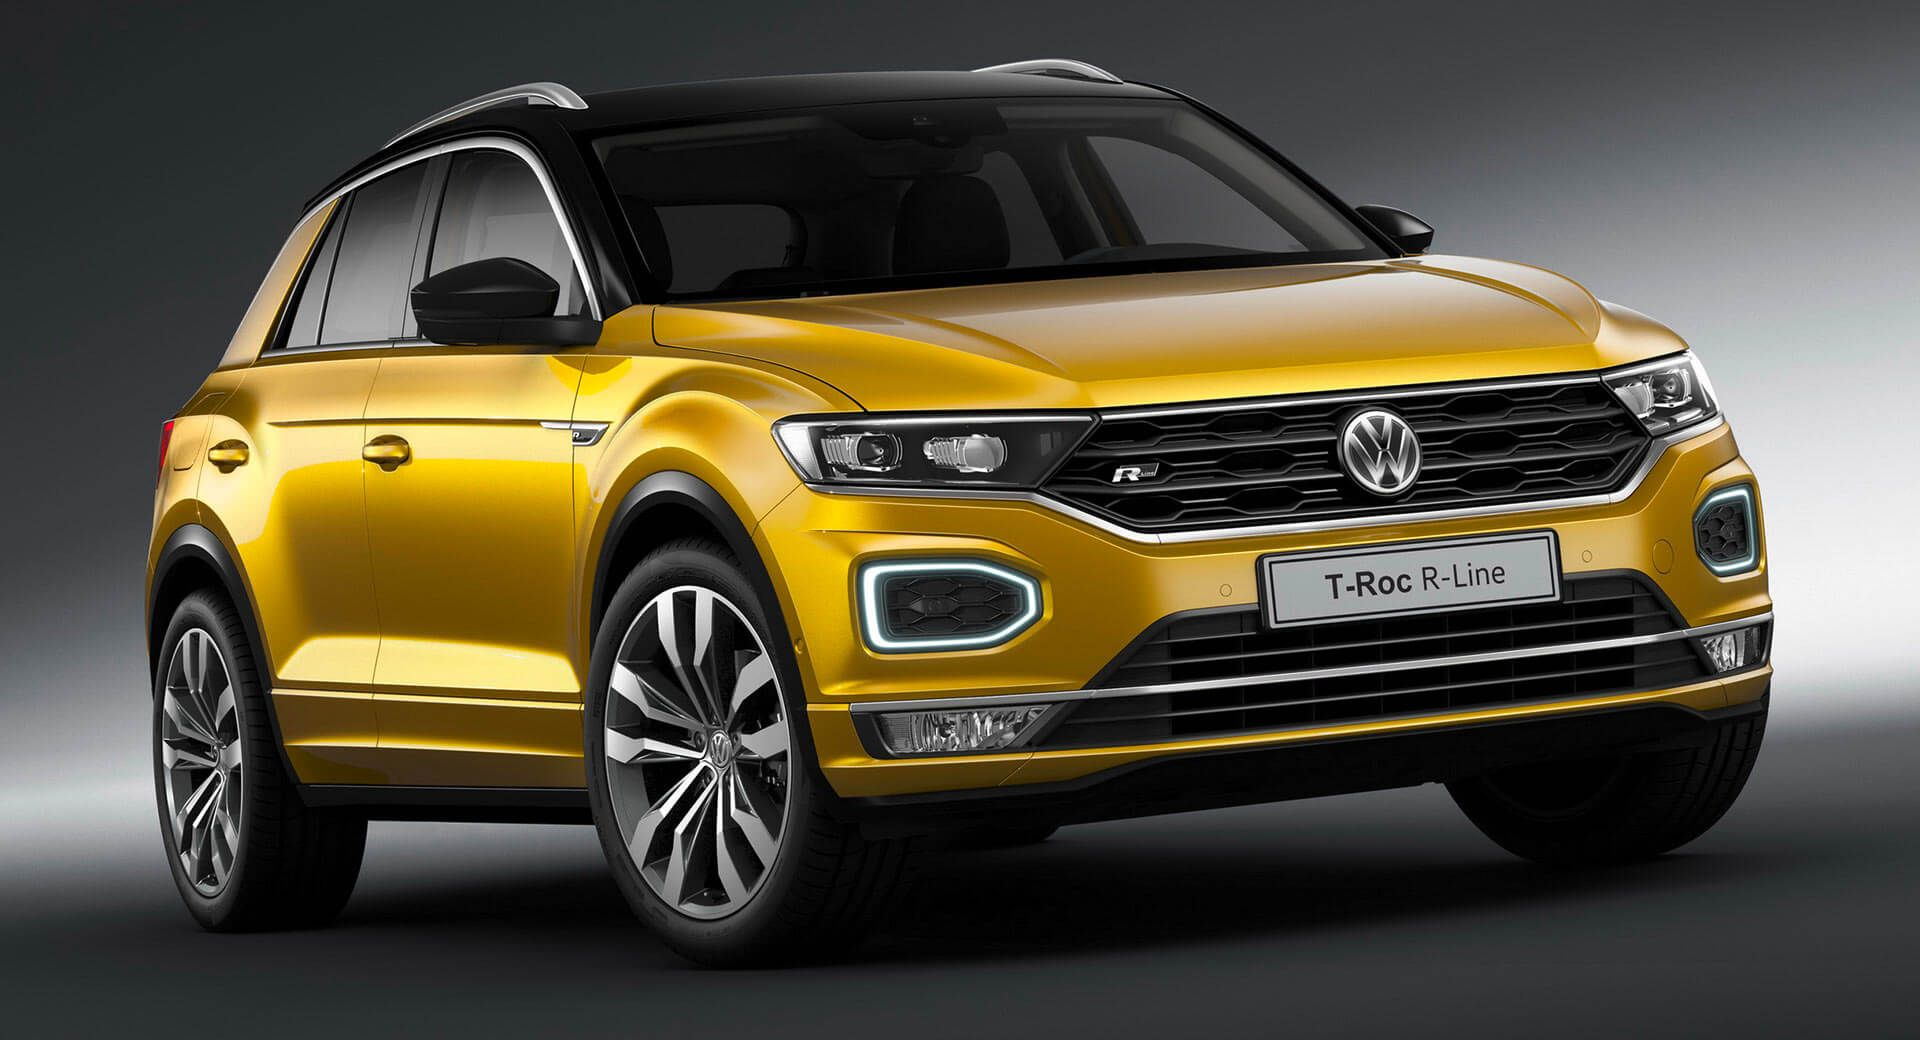 Vw T Roc And Tiguan Allspace Try To Look Fast With R Line Trims Carscoops Volkswagen Compact Suv Volkswagen Models